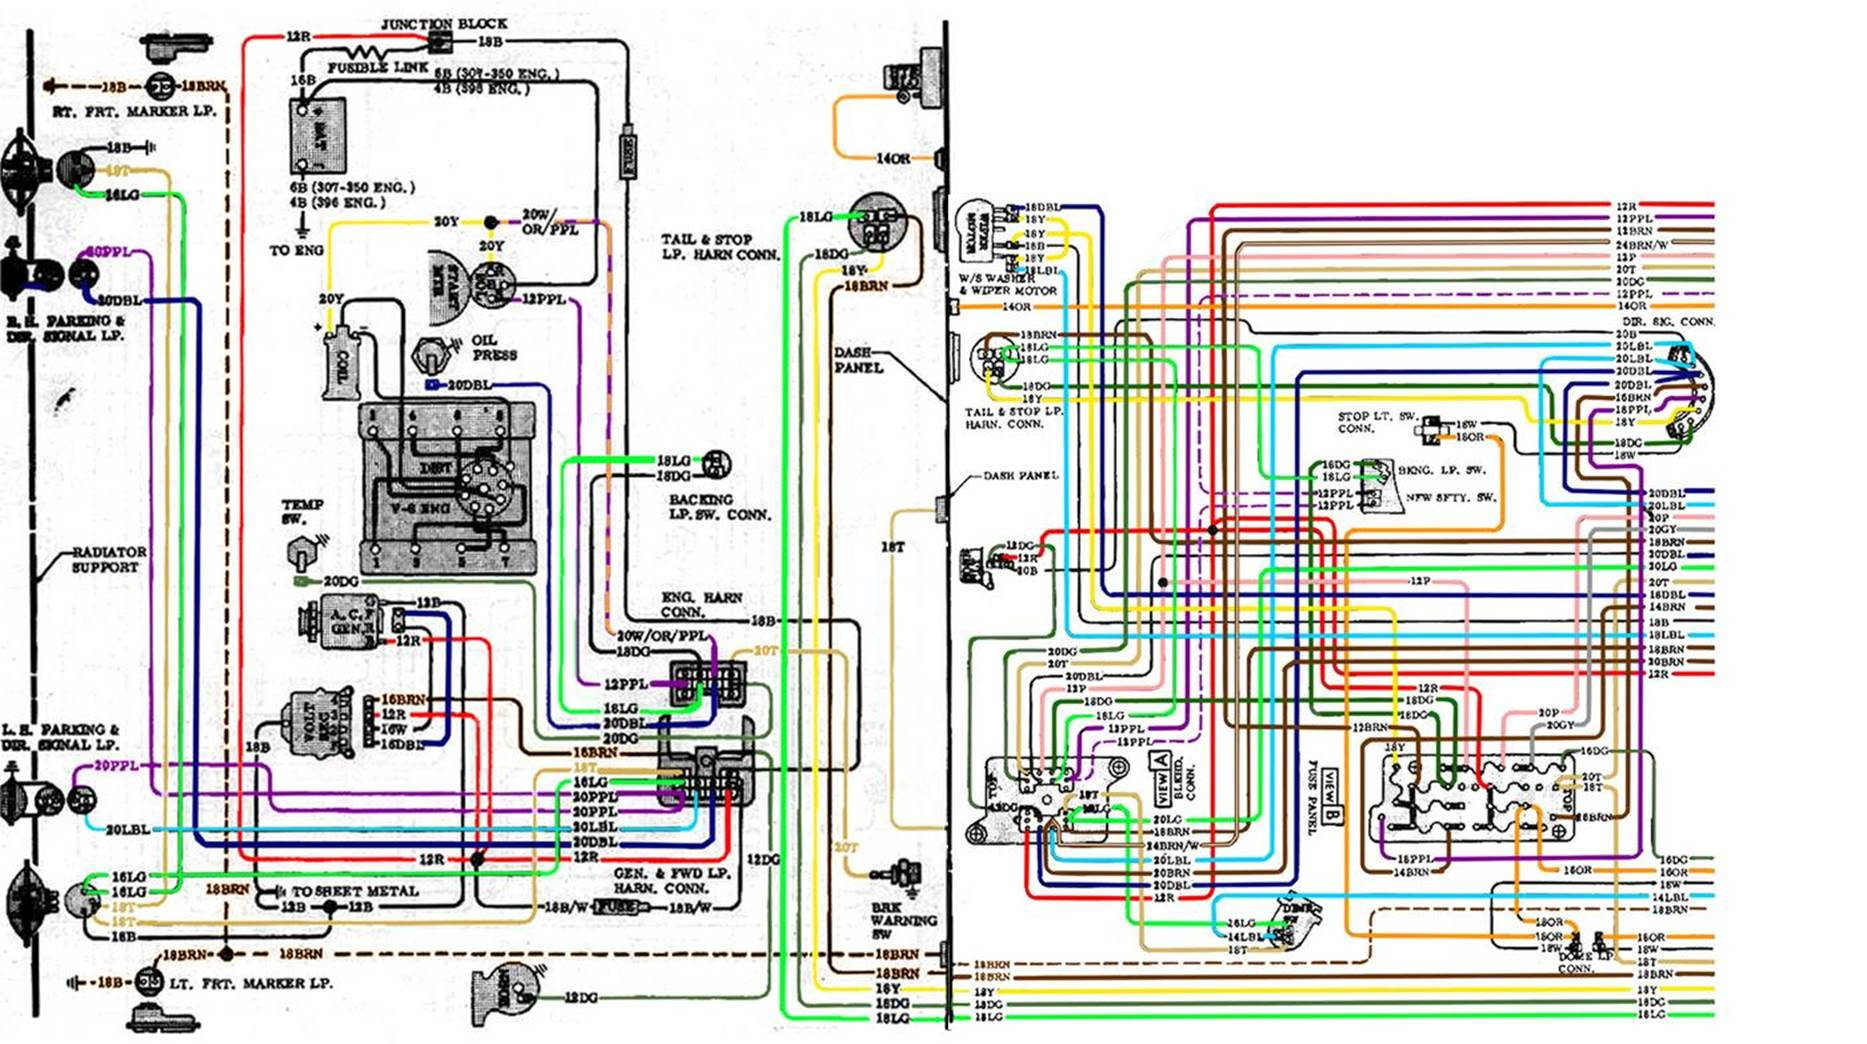 67 chevelle wiring harness data wiring diagram update rh 7 dfvcx petersen guitars de 67 chevelle tach wiring diagram 67 chevelle starter wiring diagram